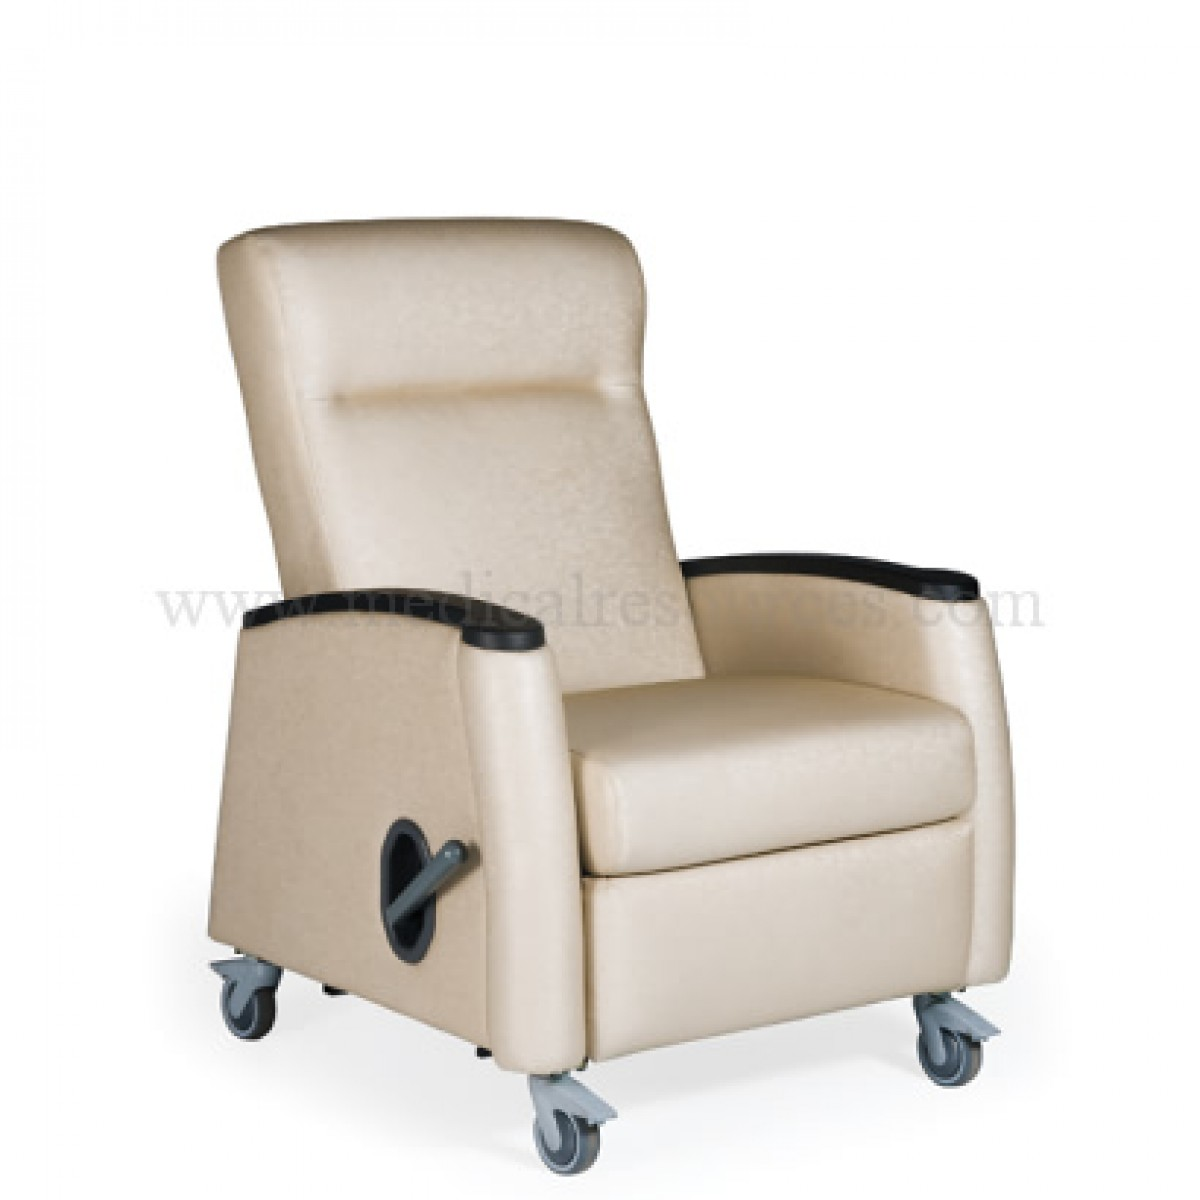 lazboy_tranquility_mobile_medical_recliner